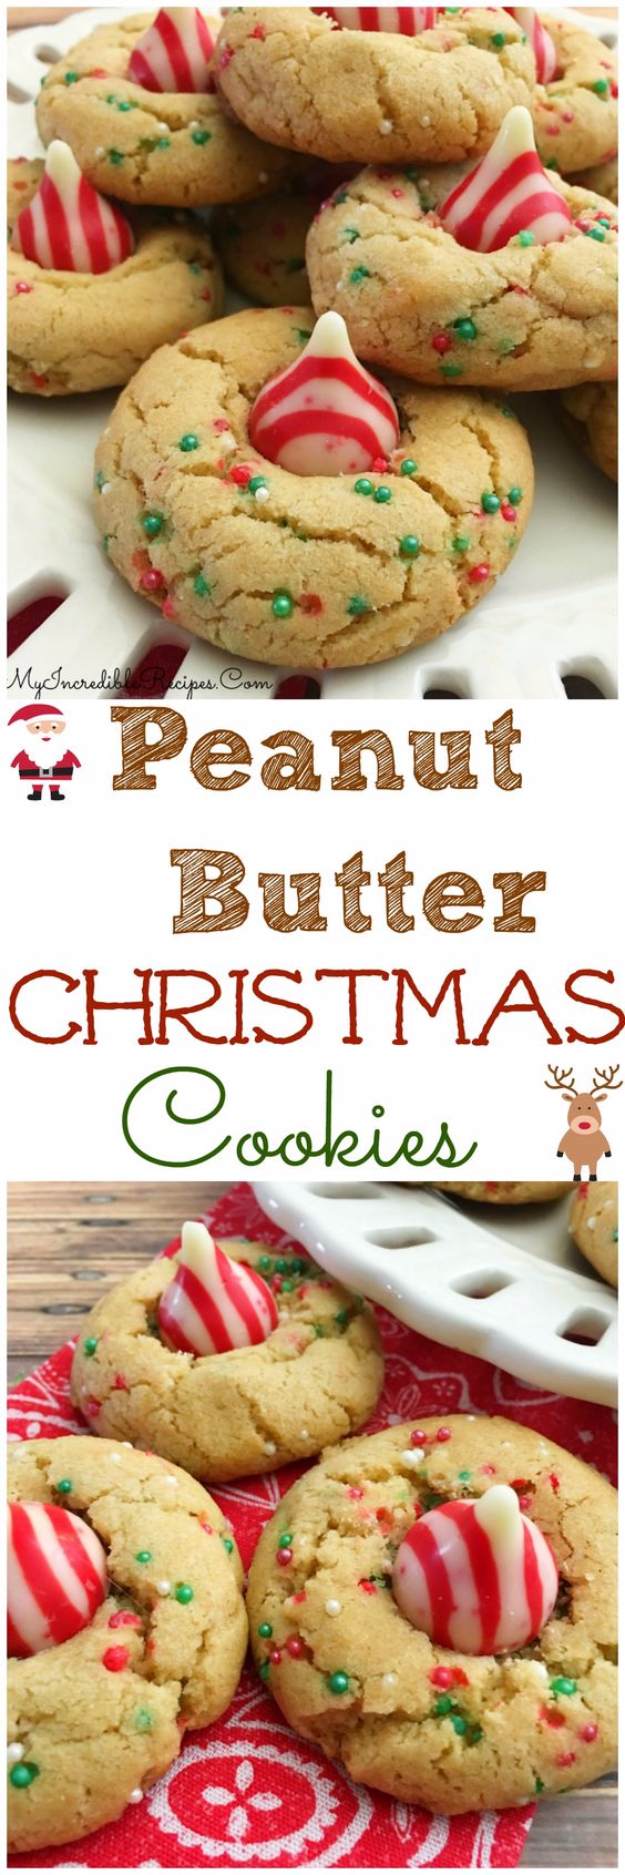 Best Recipes for Christmas Cookies- Peanut Butter Christmas Cookies - Easy Decorated Holiday Cookies - Candy Cookie Recipes Ideas for Kids - Traditional Favorites and Gluten Free and Healthy Versions - Quick No Bake Cookies and Last Minute Desserts for the Holidays